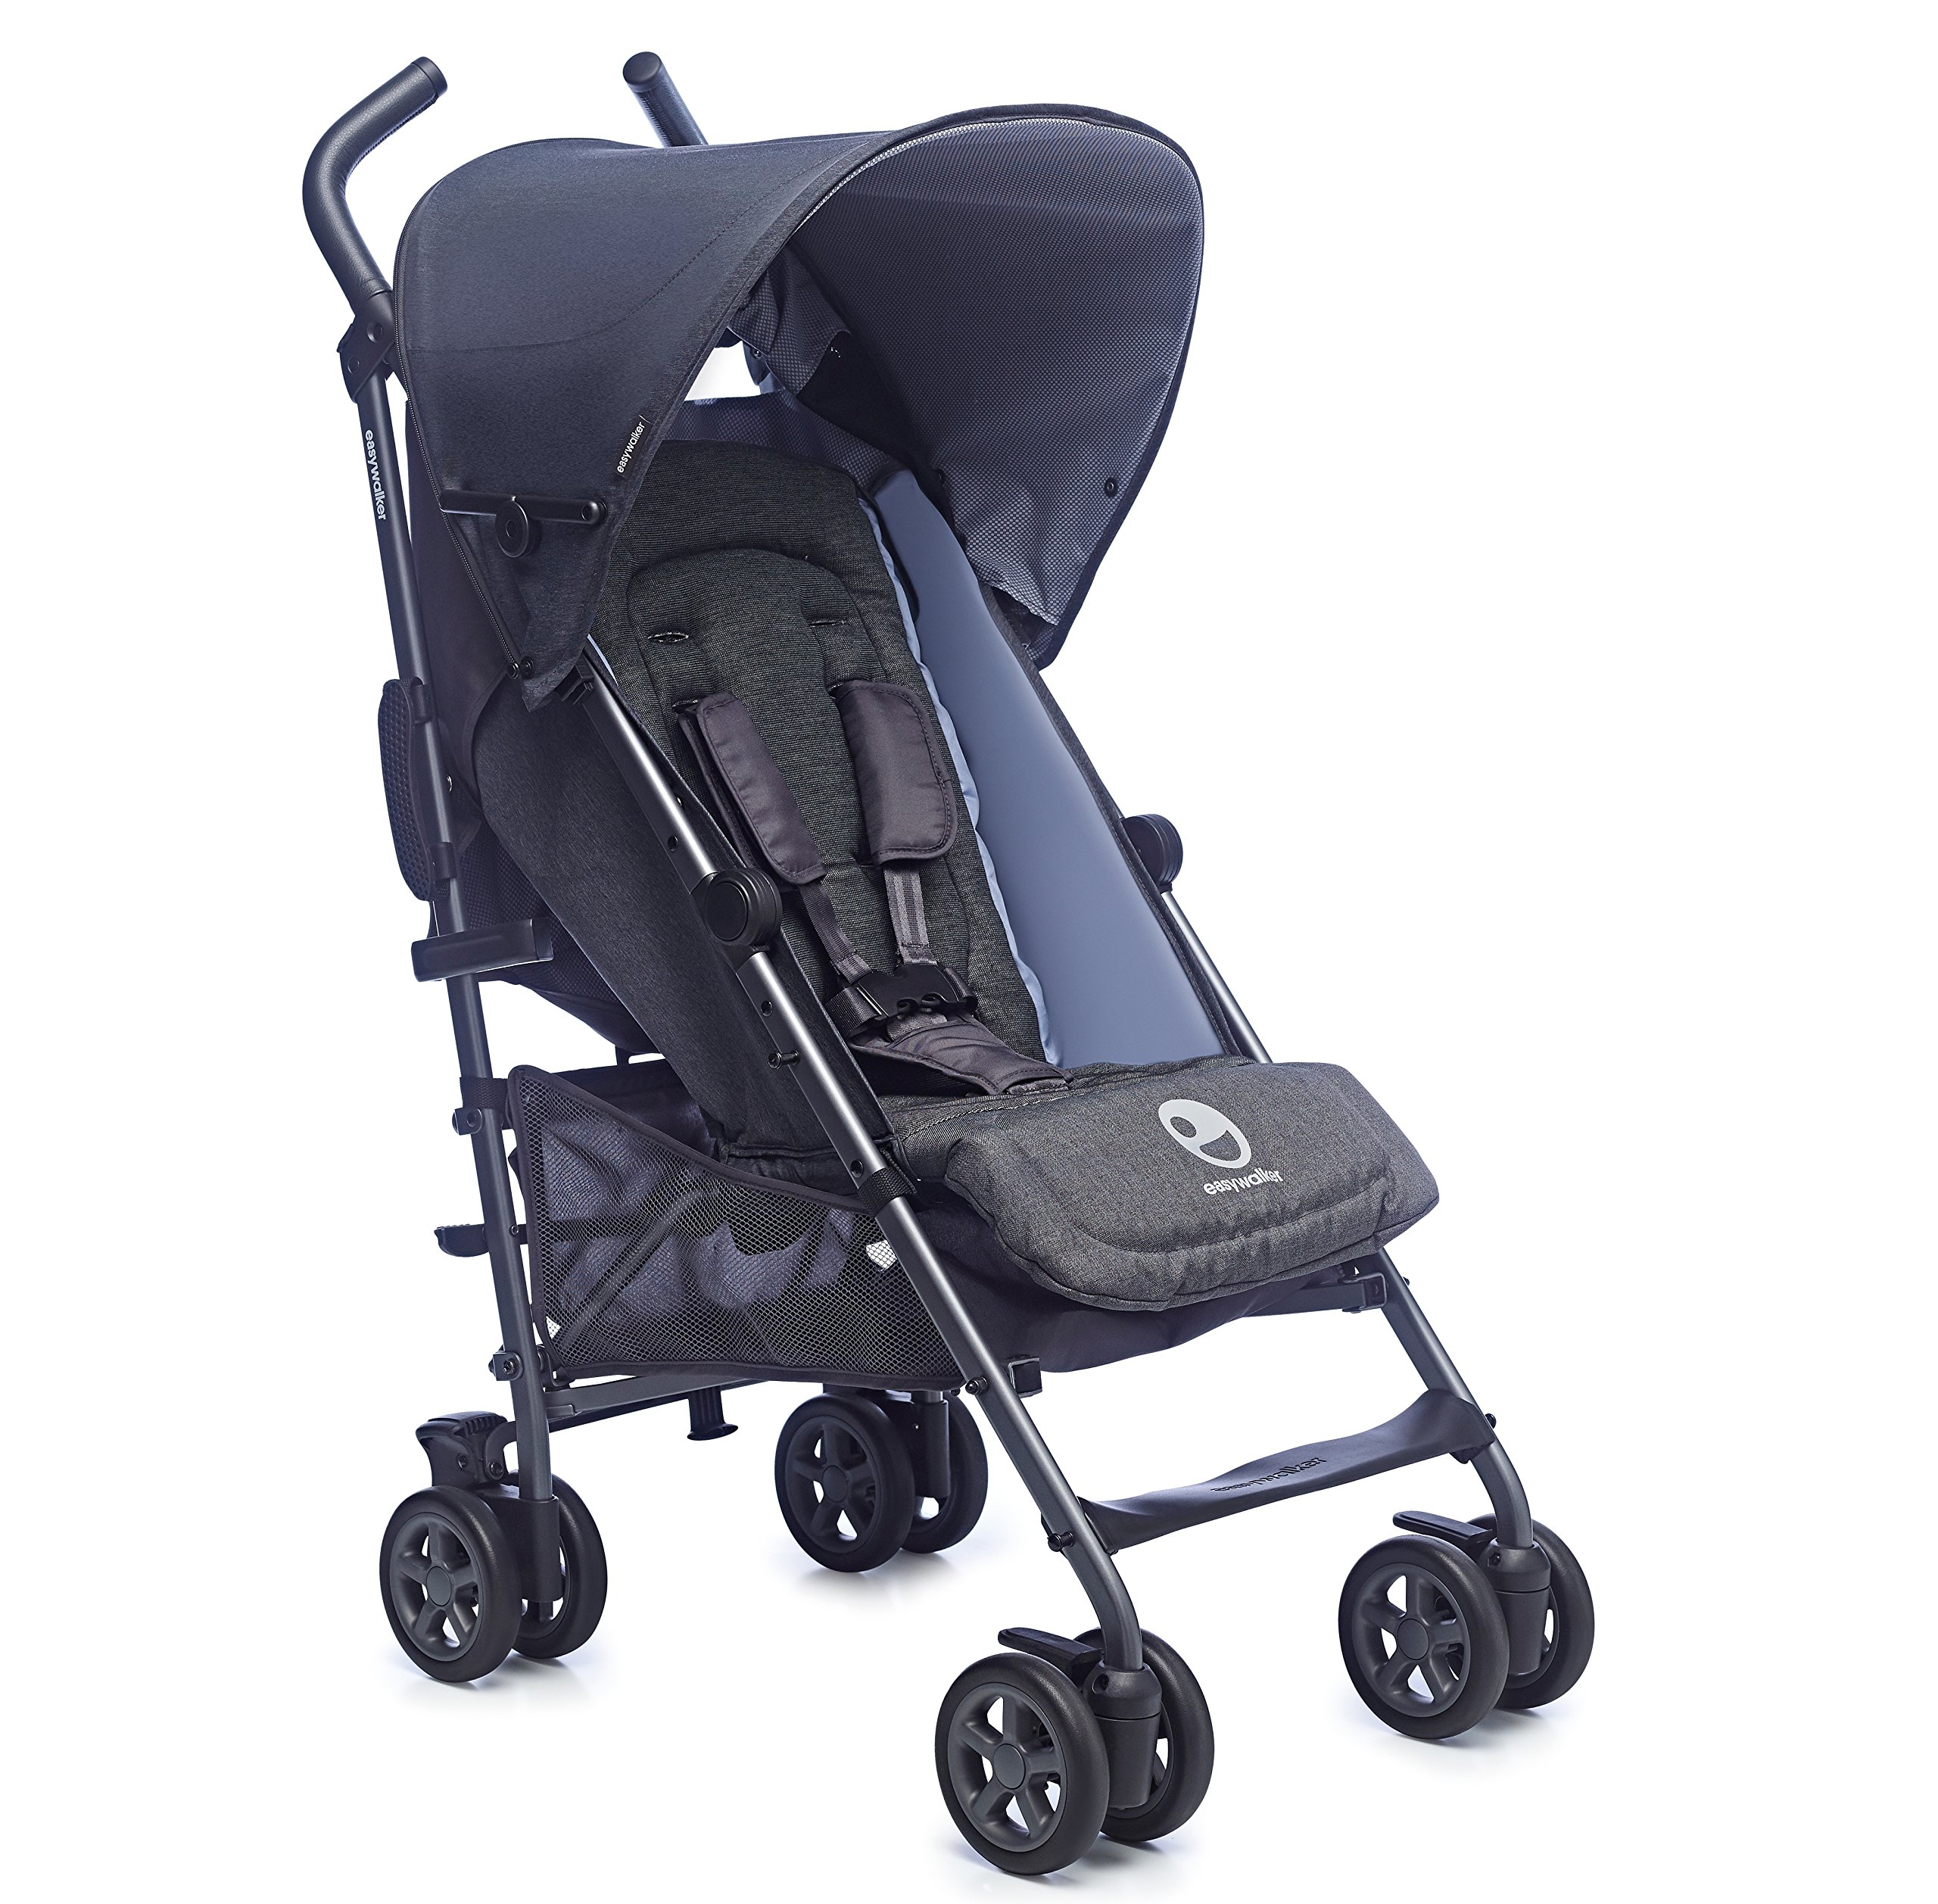 Easywalker Buggy, Berlin Breakfast  Suitable from birth 5 point 3 position harness Four recline positions with near flat recline 1